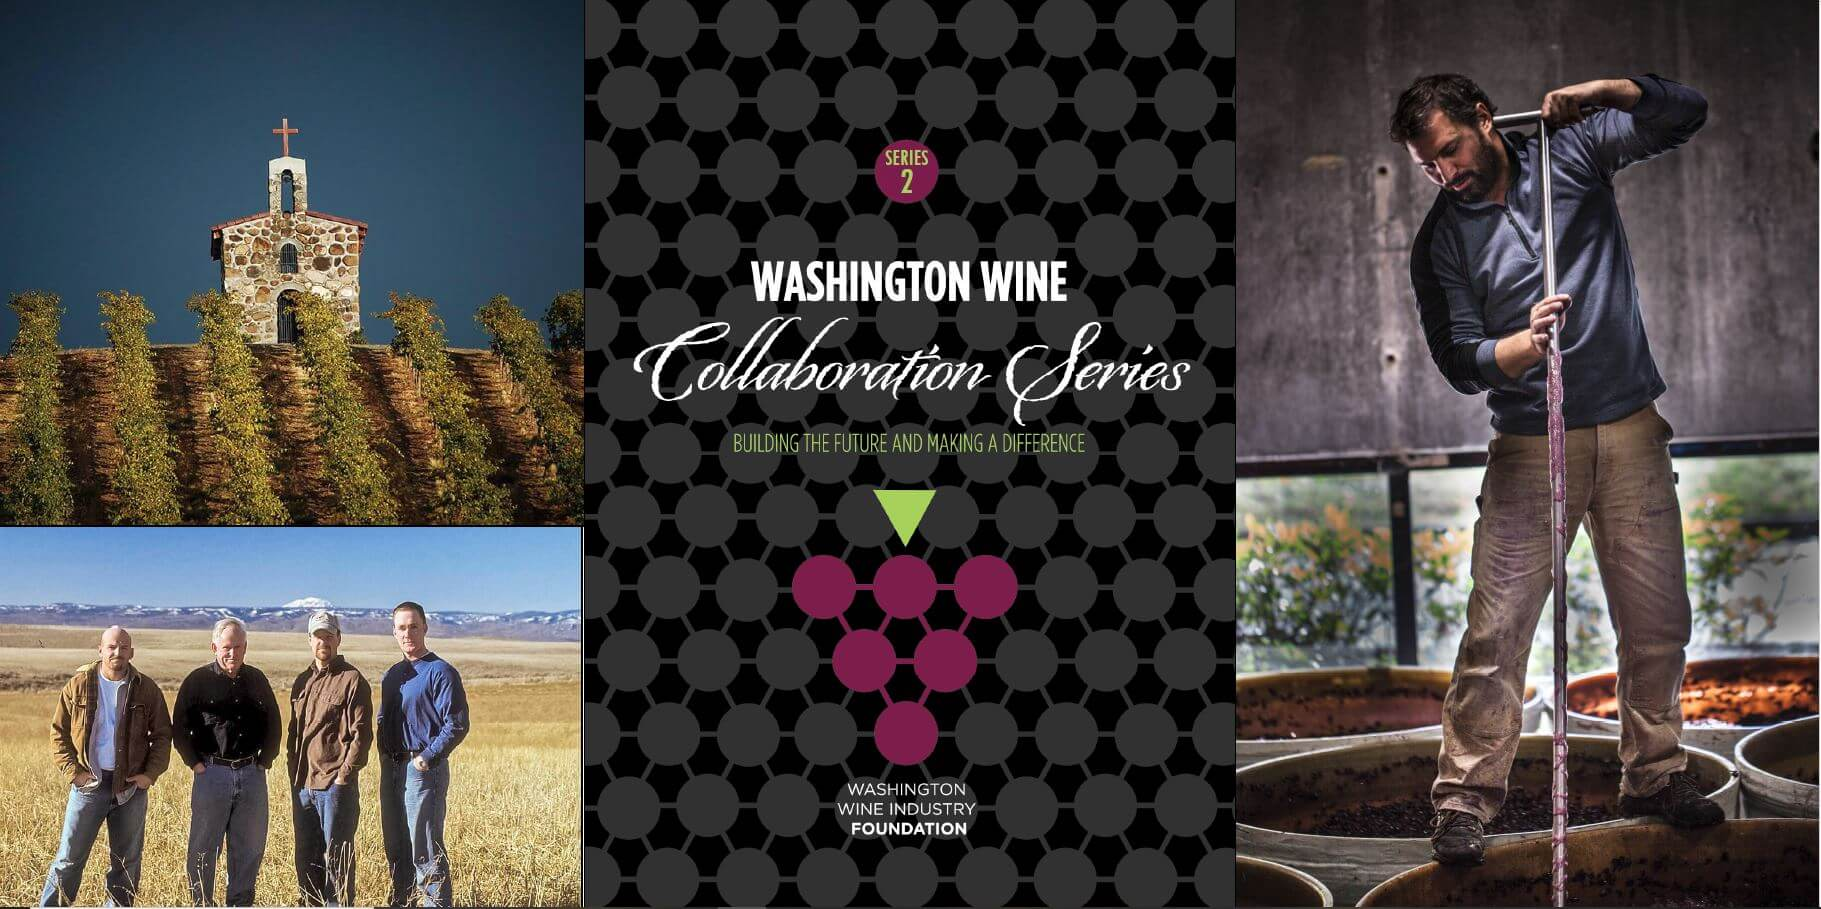 Washington Wine Collaboration Series #2 label + pictures of the vineyard, growers, and winemaker crushing grapes